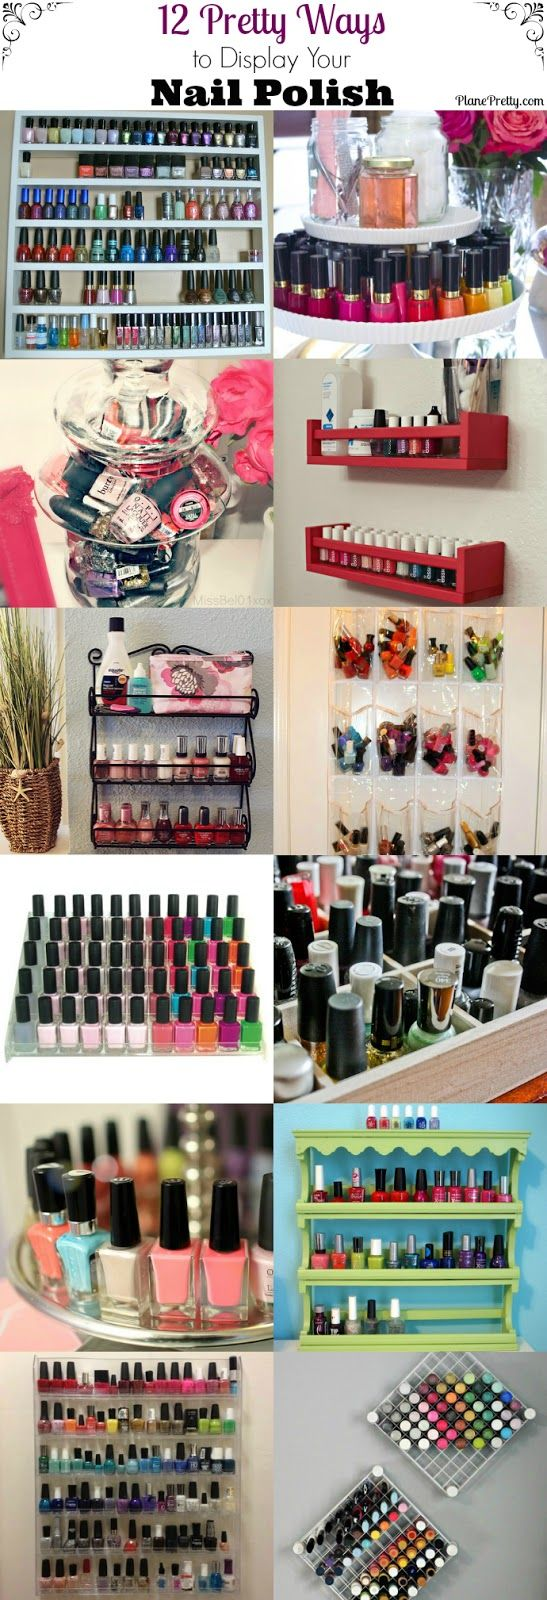 Neat Ways To Organize Your Nails Polishs